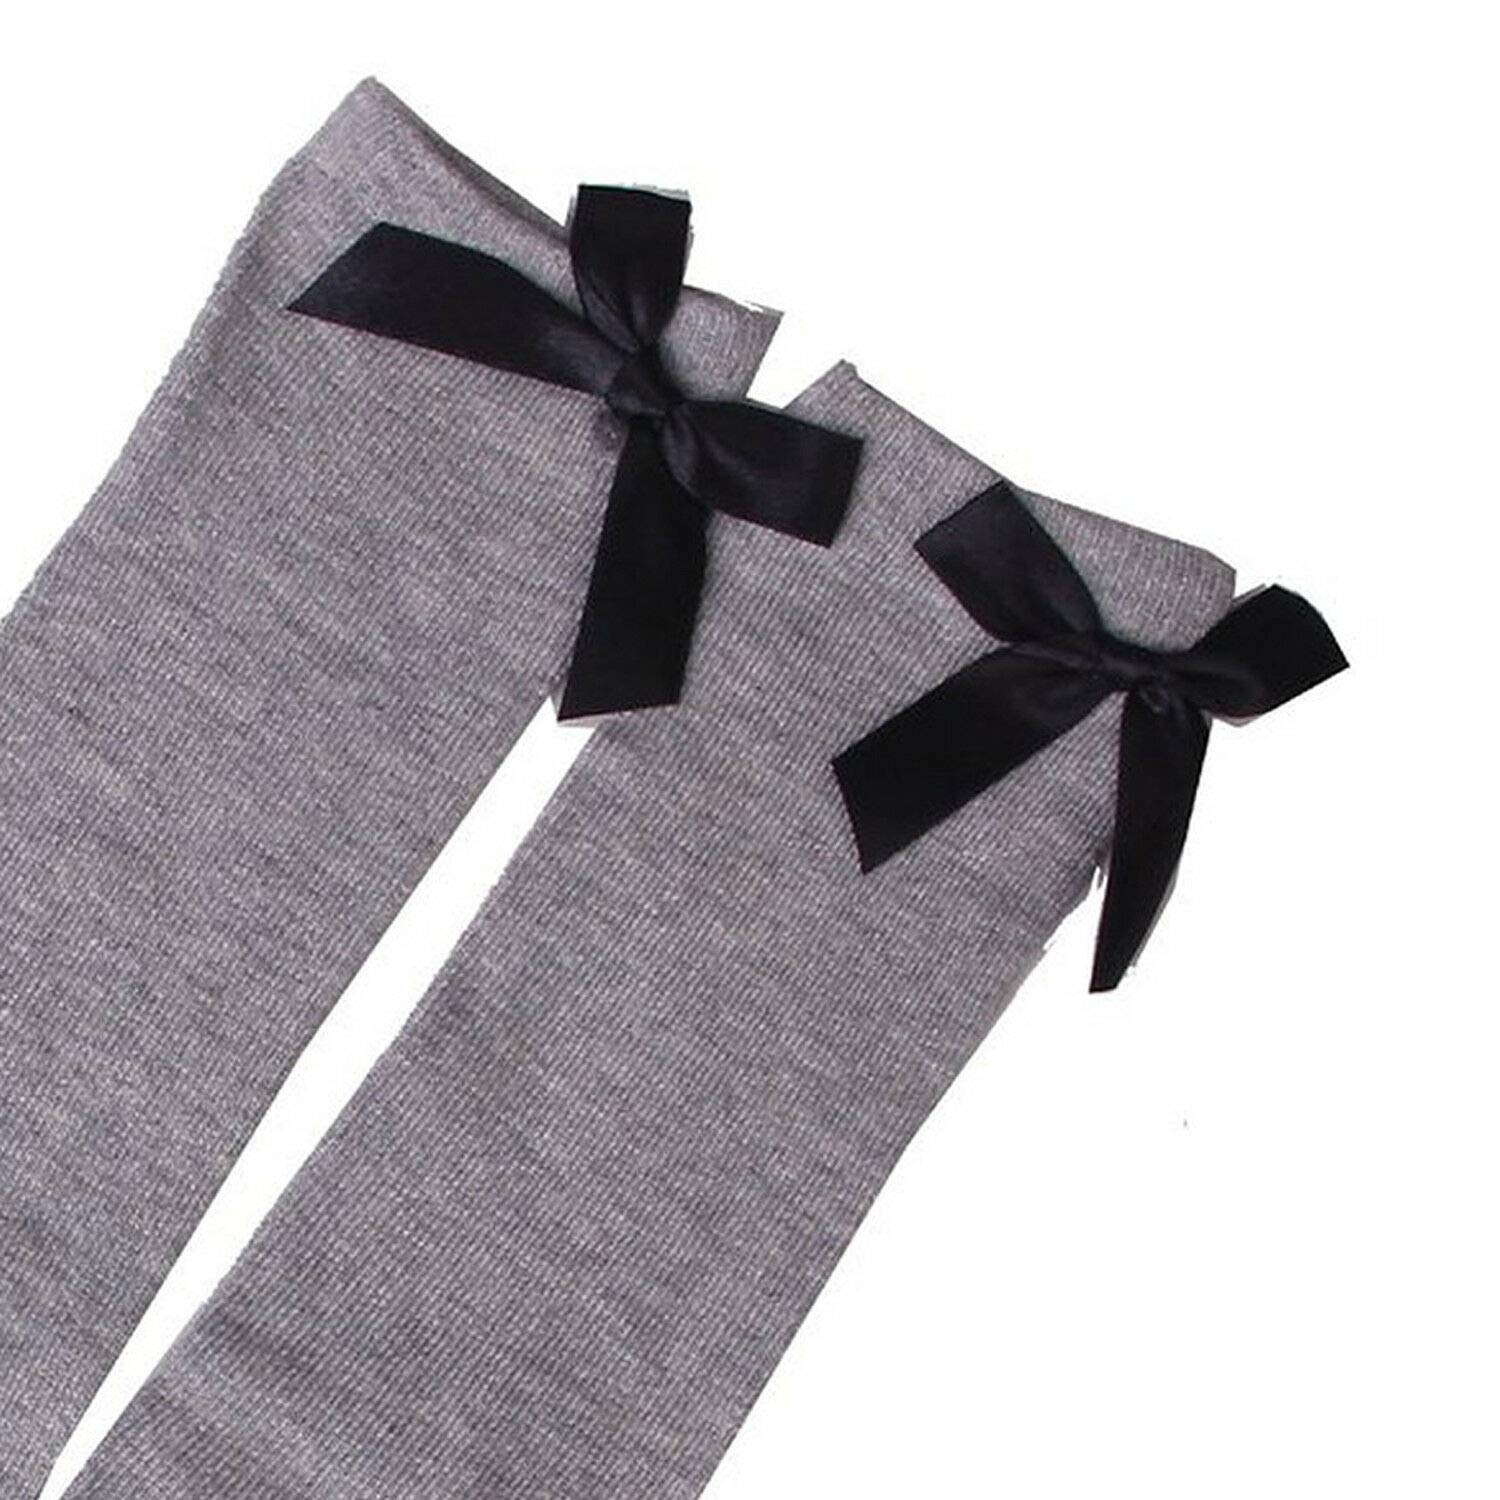 1-6 Years Kids Girls Princess Knee High Socks w// Bowknot Grey lovely bowkno I4F8